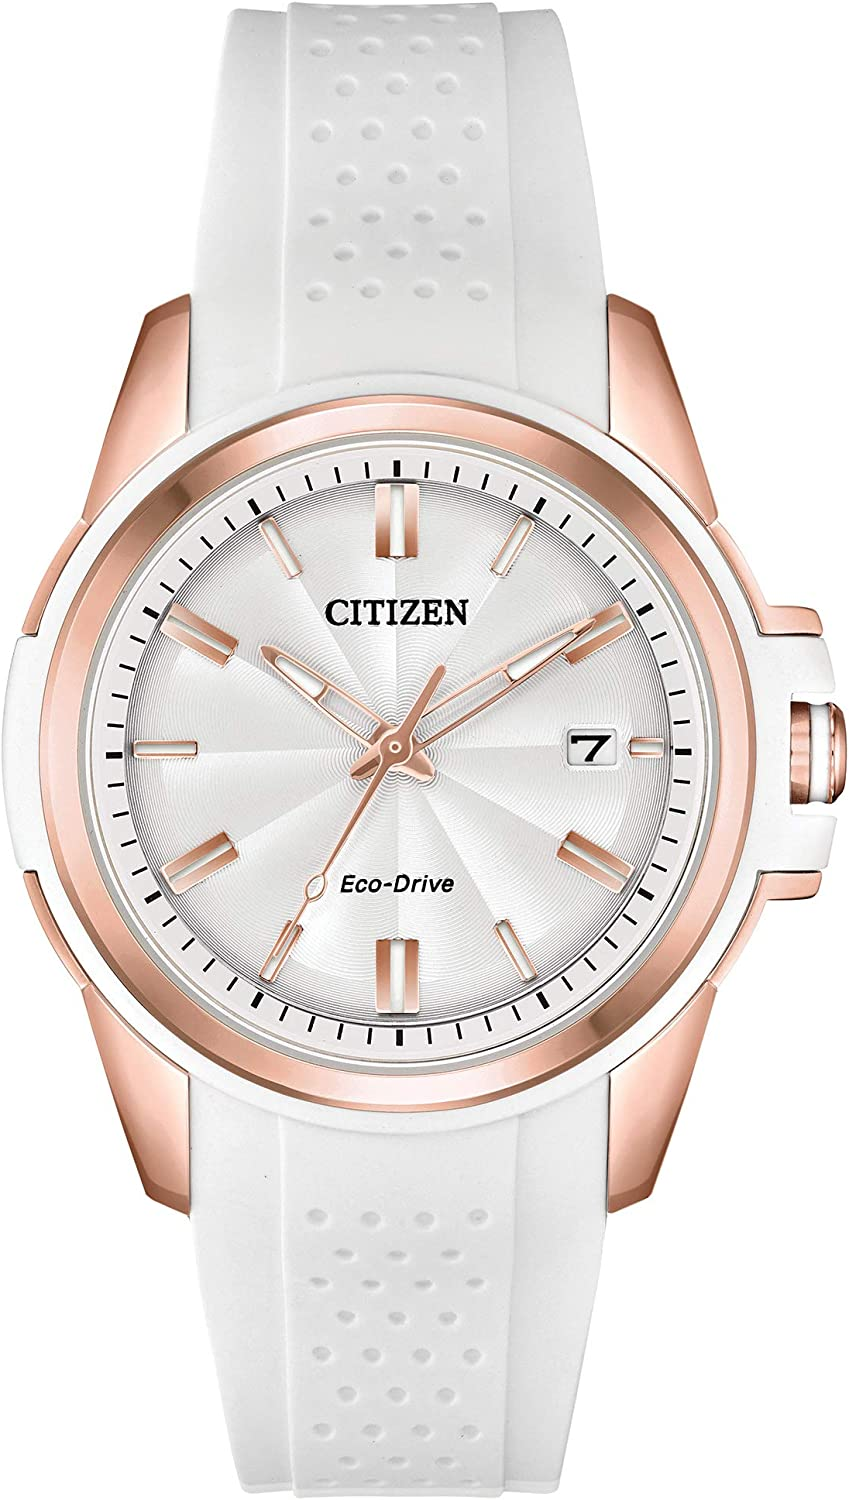 Citizen Women's Drive Stainless Steel Quartz Watch with Silicone Strap, White, 20 (Model: FE6136-01A)